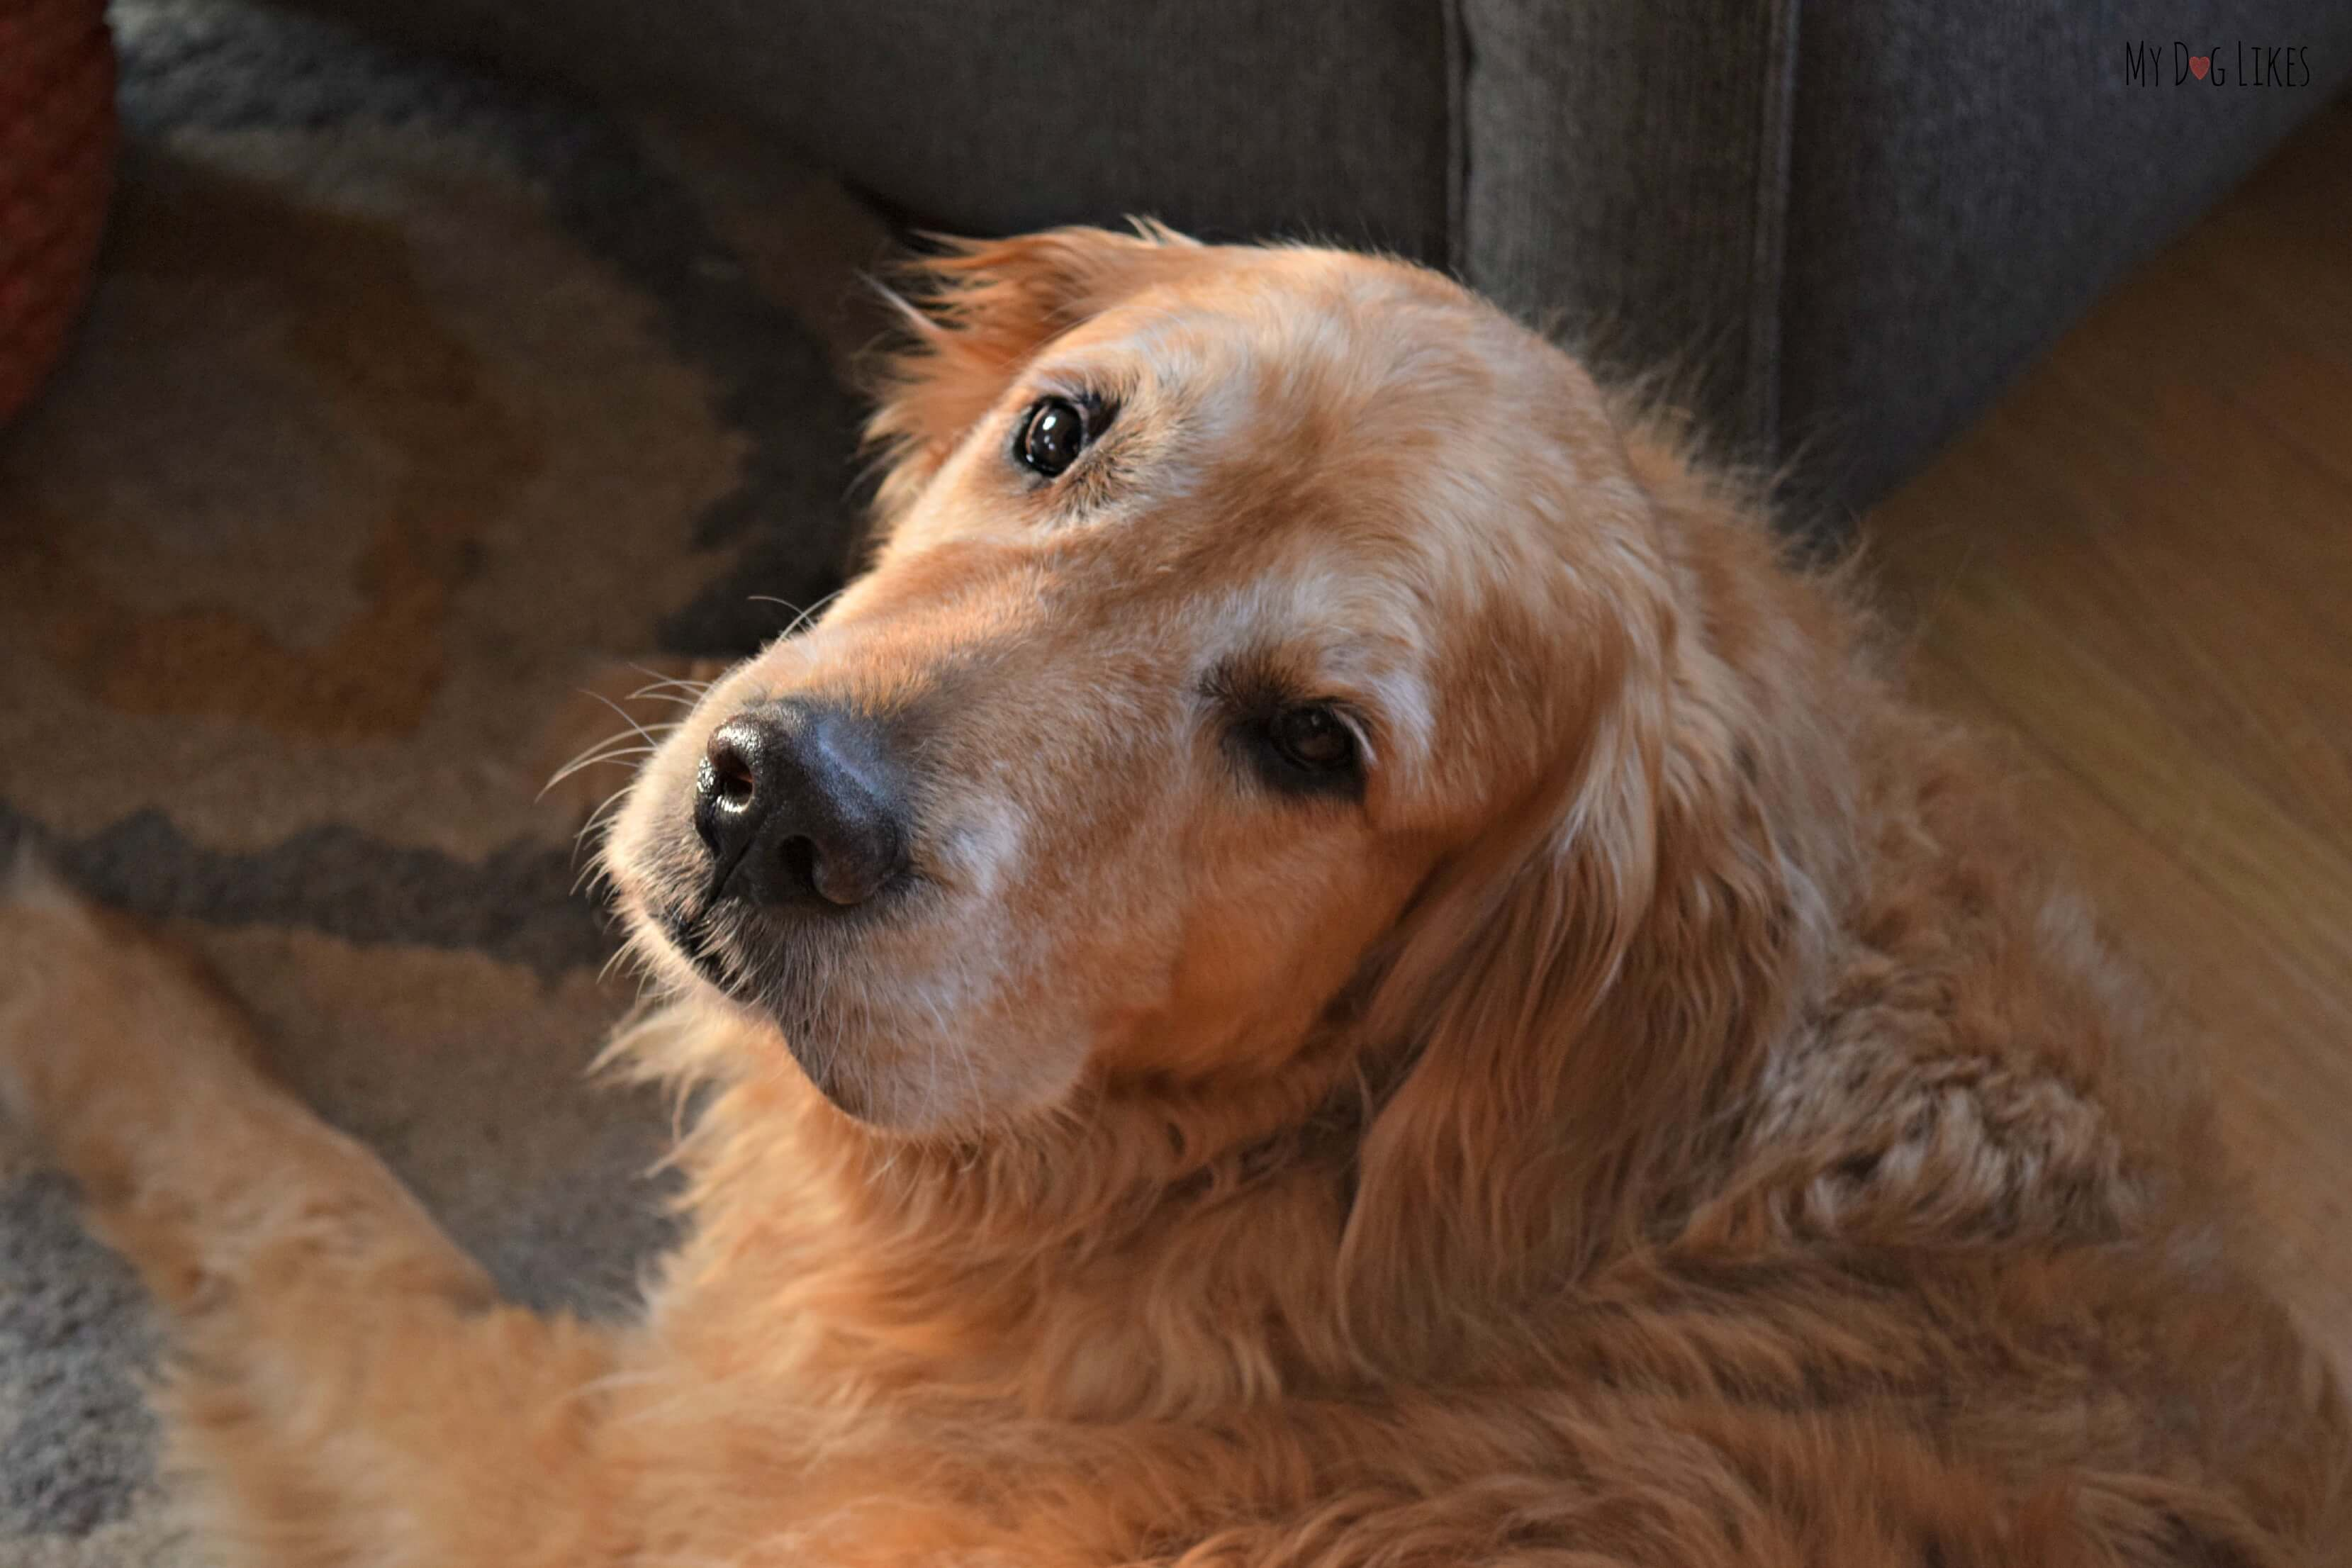 Canine Hip Dysplasia in Dogs: Your Questions Answered - MyDogLikes